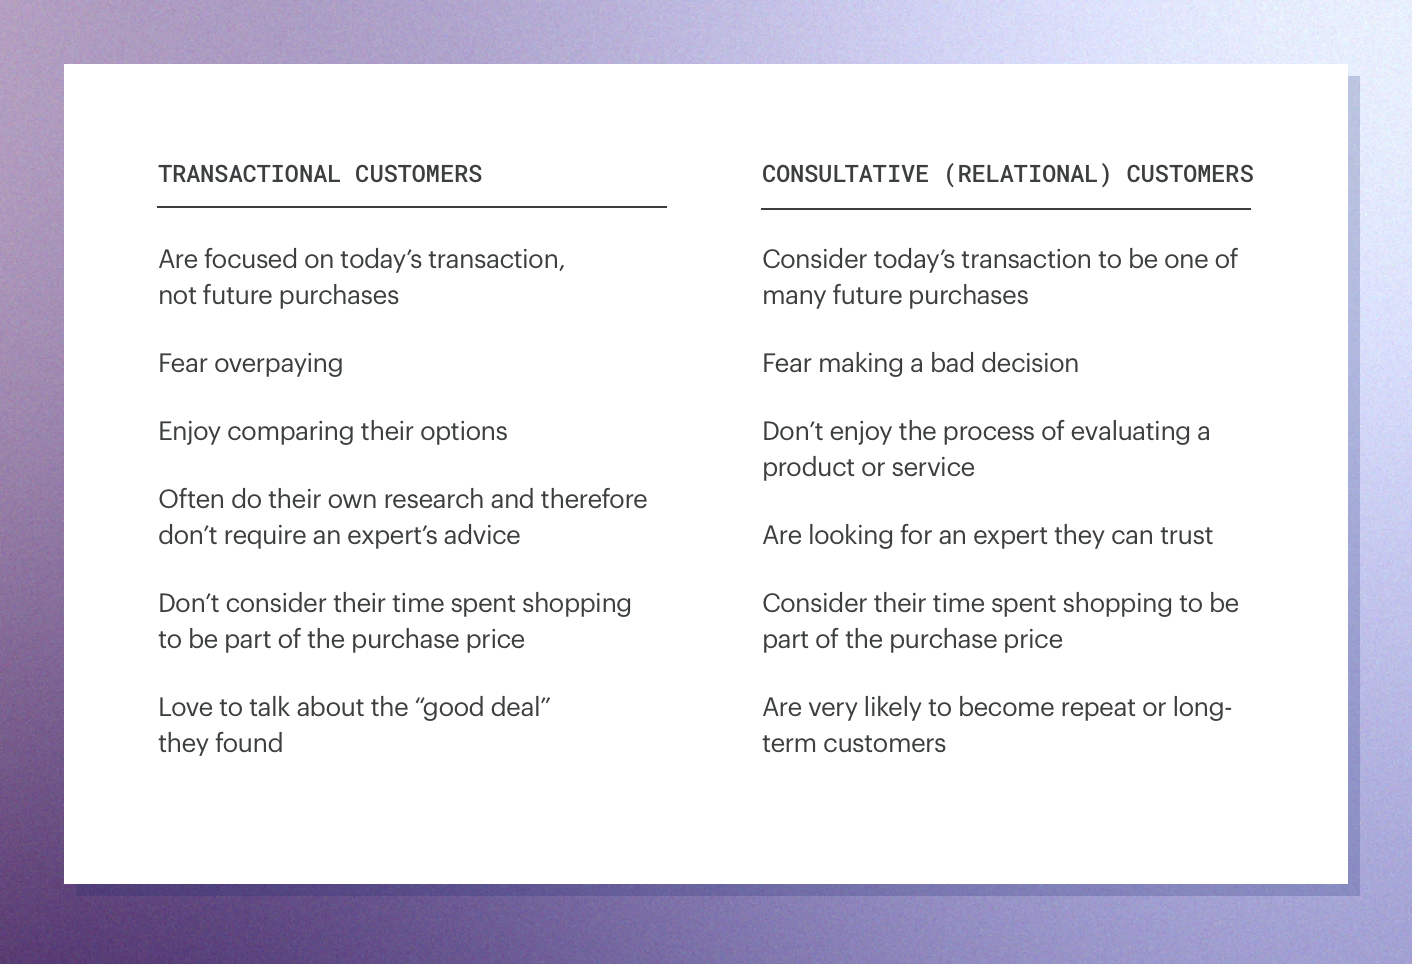 transactional vs. relational customers